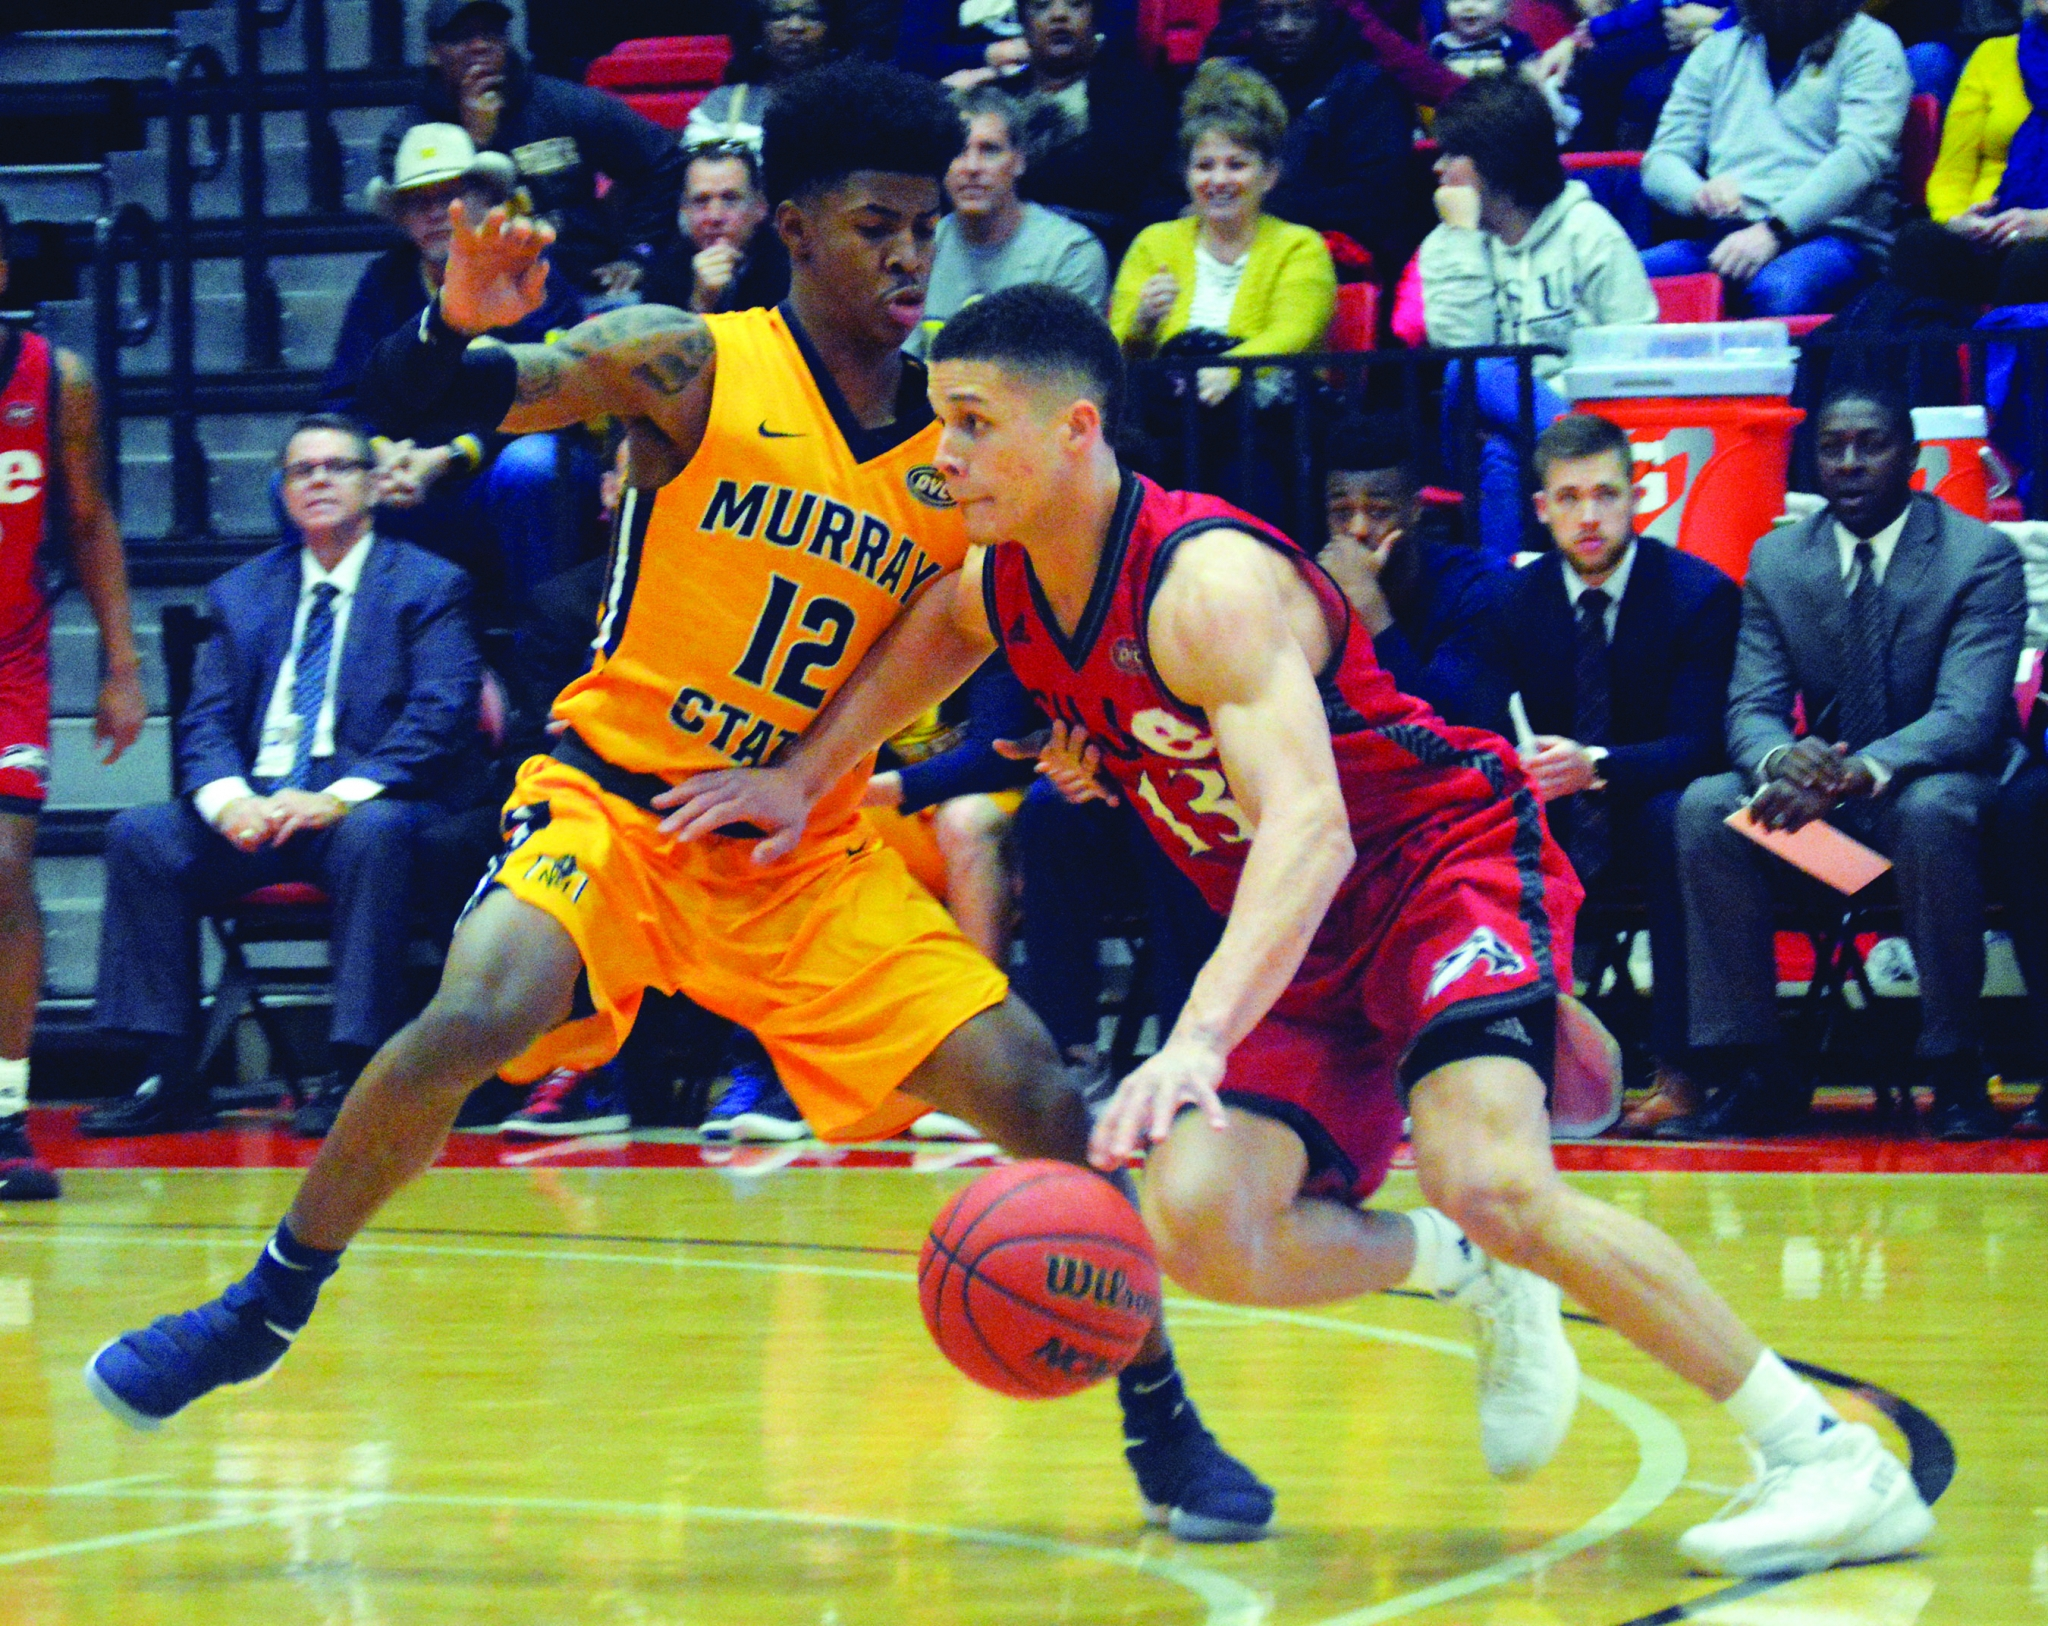 MENS' BASKETBALL: Cougars fall to Racers at home - The ...